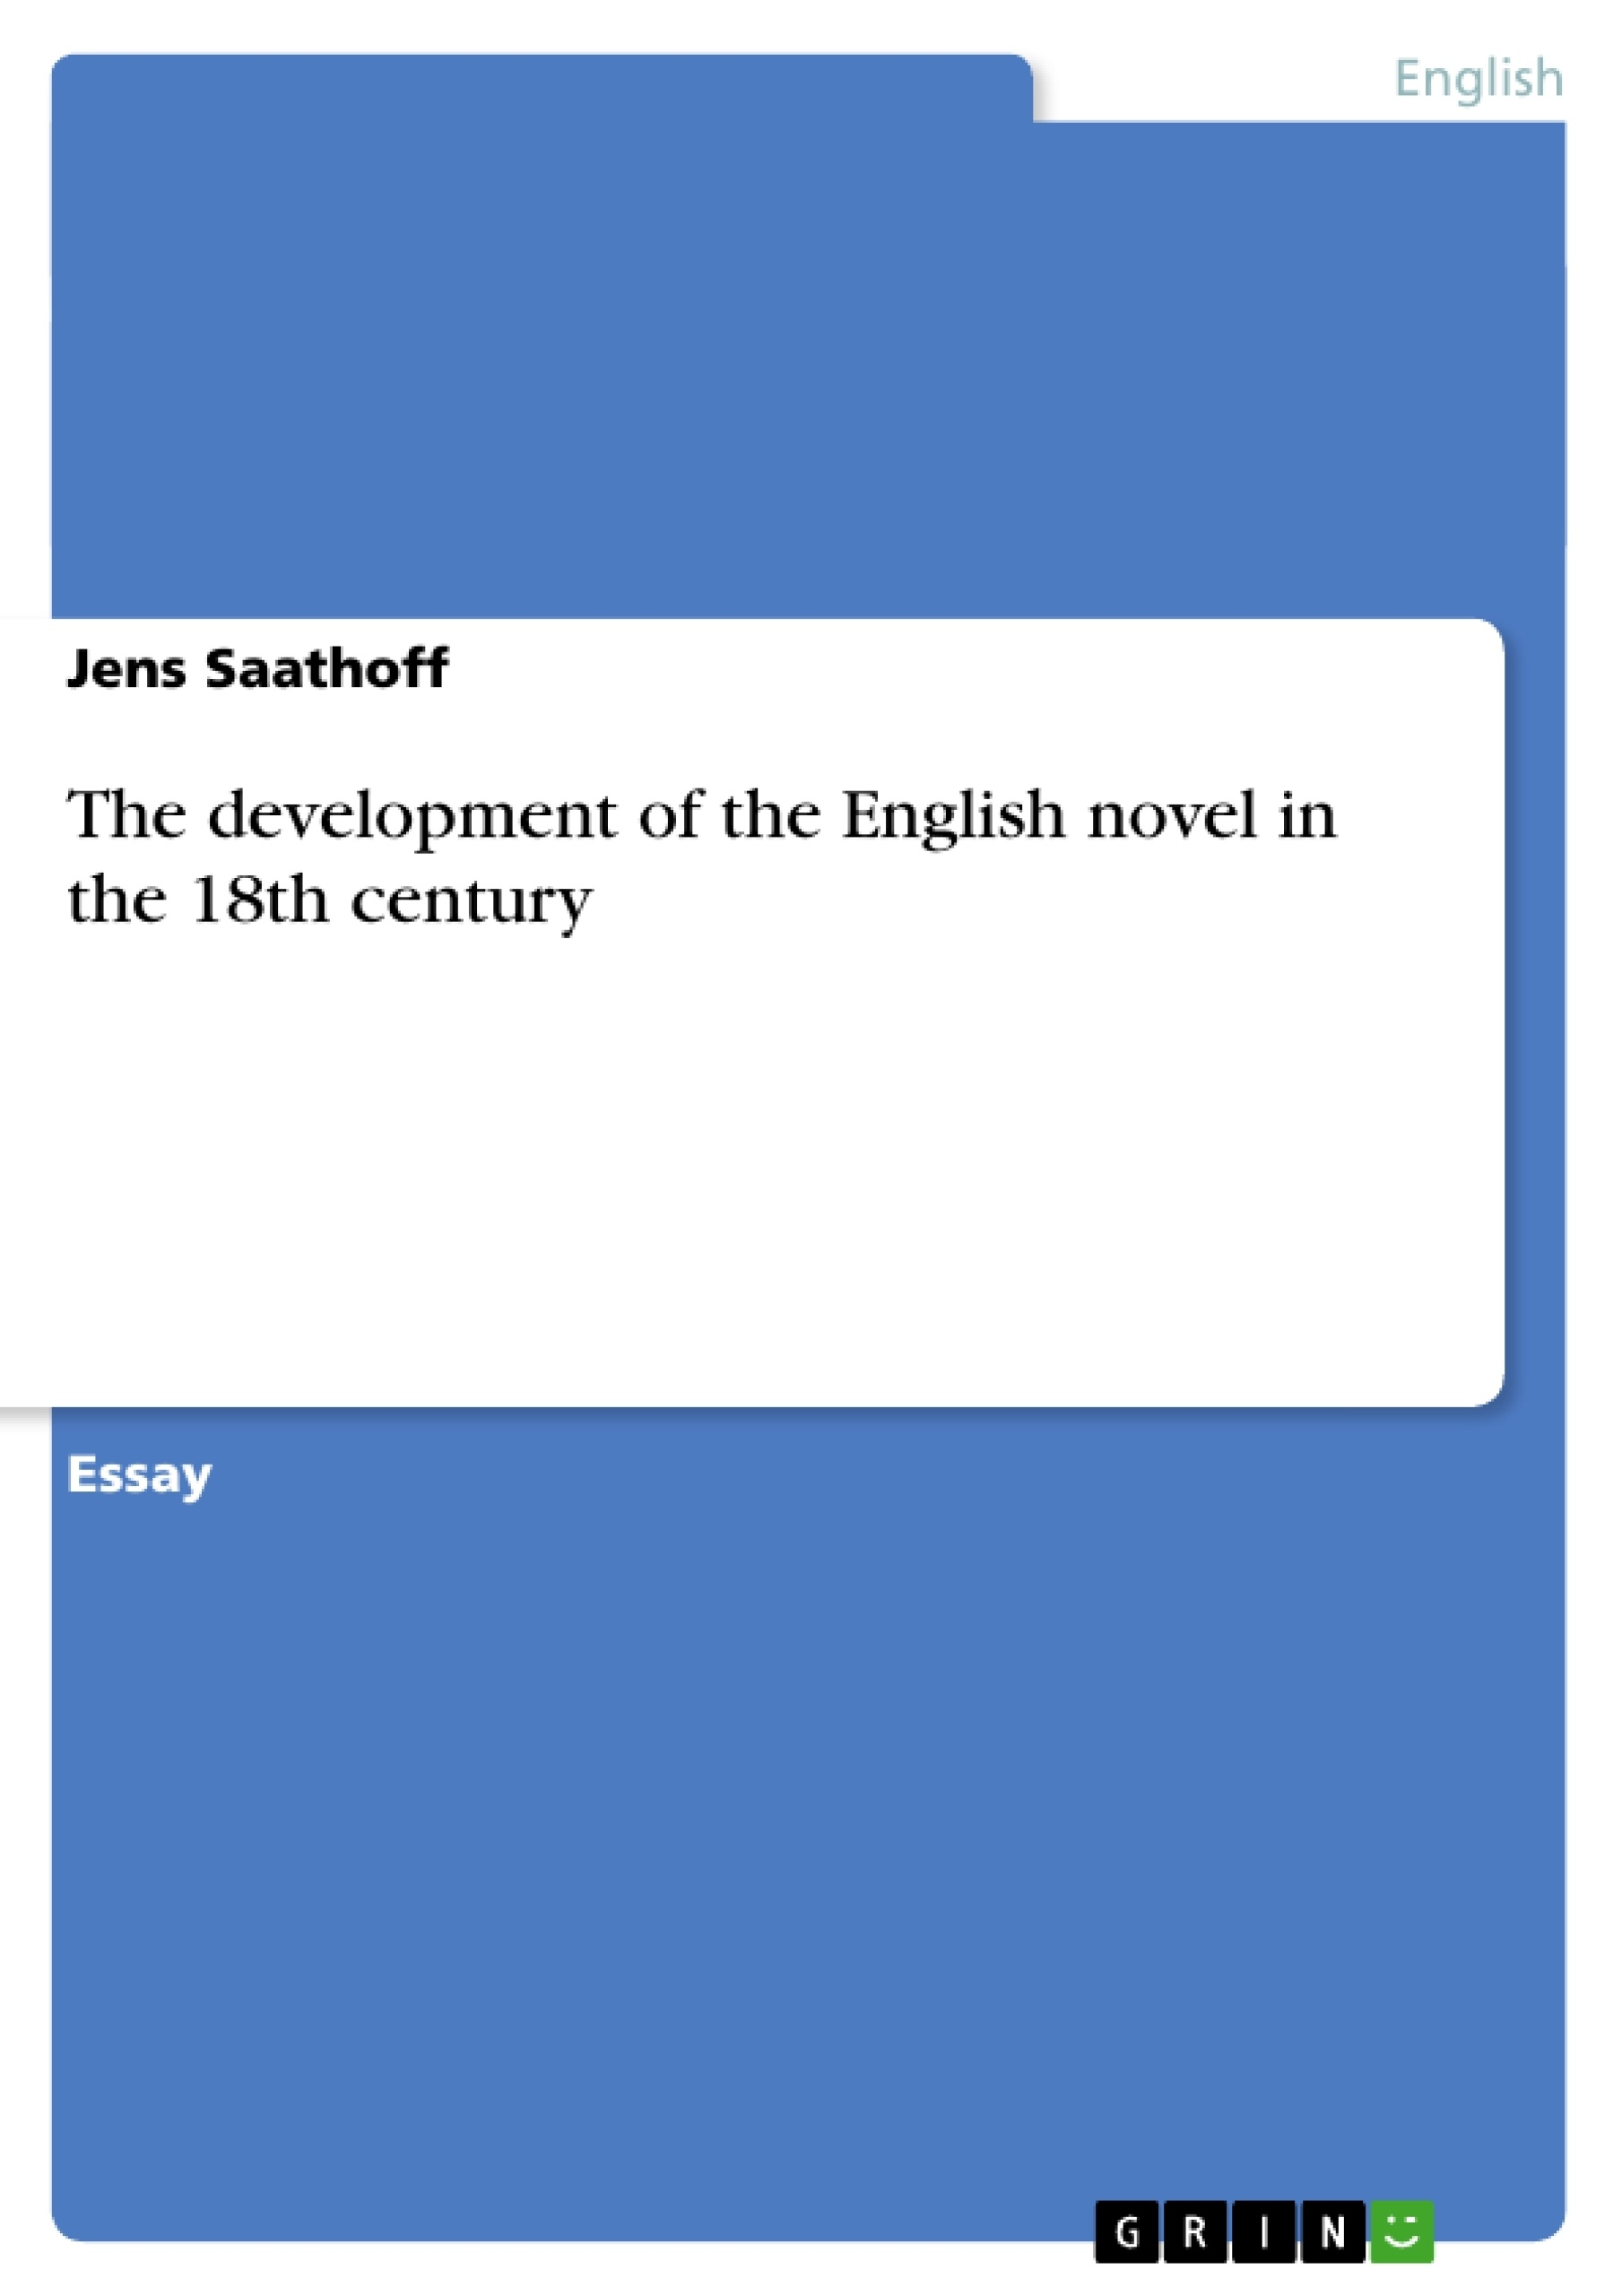 term paper george eliot Middlemarch by george eliot essay - world literature buy best quality custom written middlemarch by george eliot essay live 24/7 chat  term paper term paper is a .